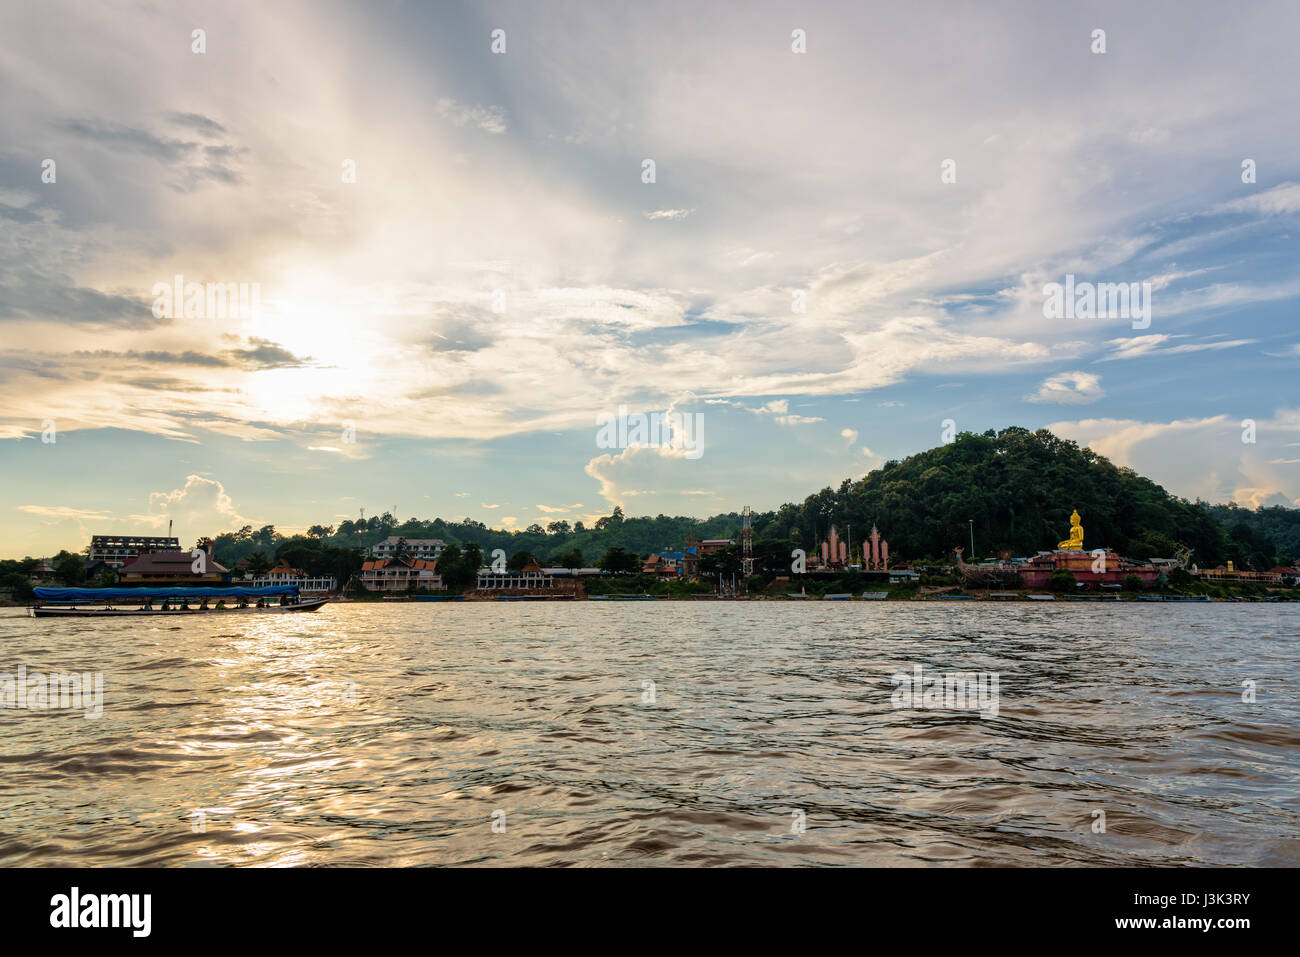 Beautiful natural landscape and tourist boat cruising the beauty of the Mekong River coast at sunset in the Golden - Stock Image